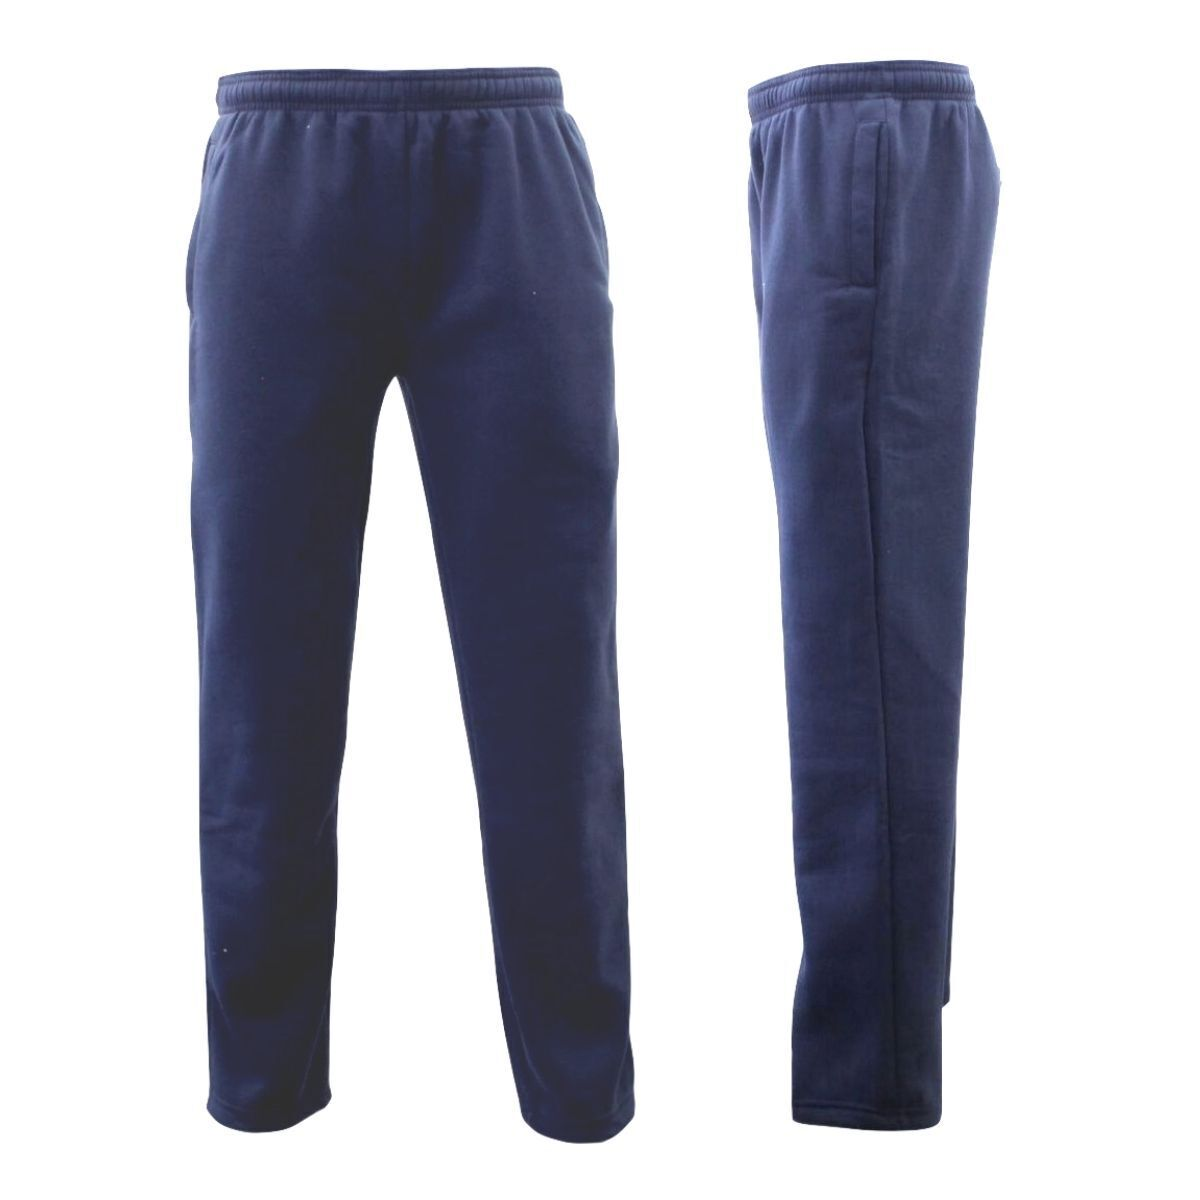 Men-039-s-Fleece-Lined-Track-Pants-Track-Suit-Pants-Casual-Winter-Elastic-Waist-B thumbnail 9